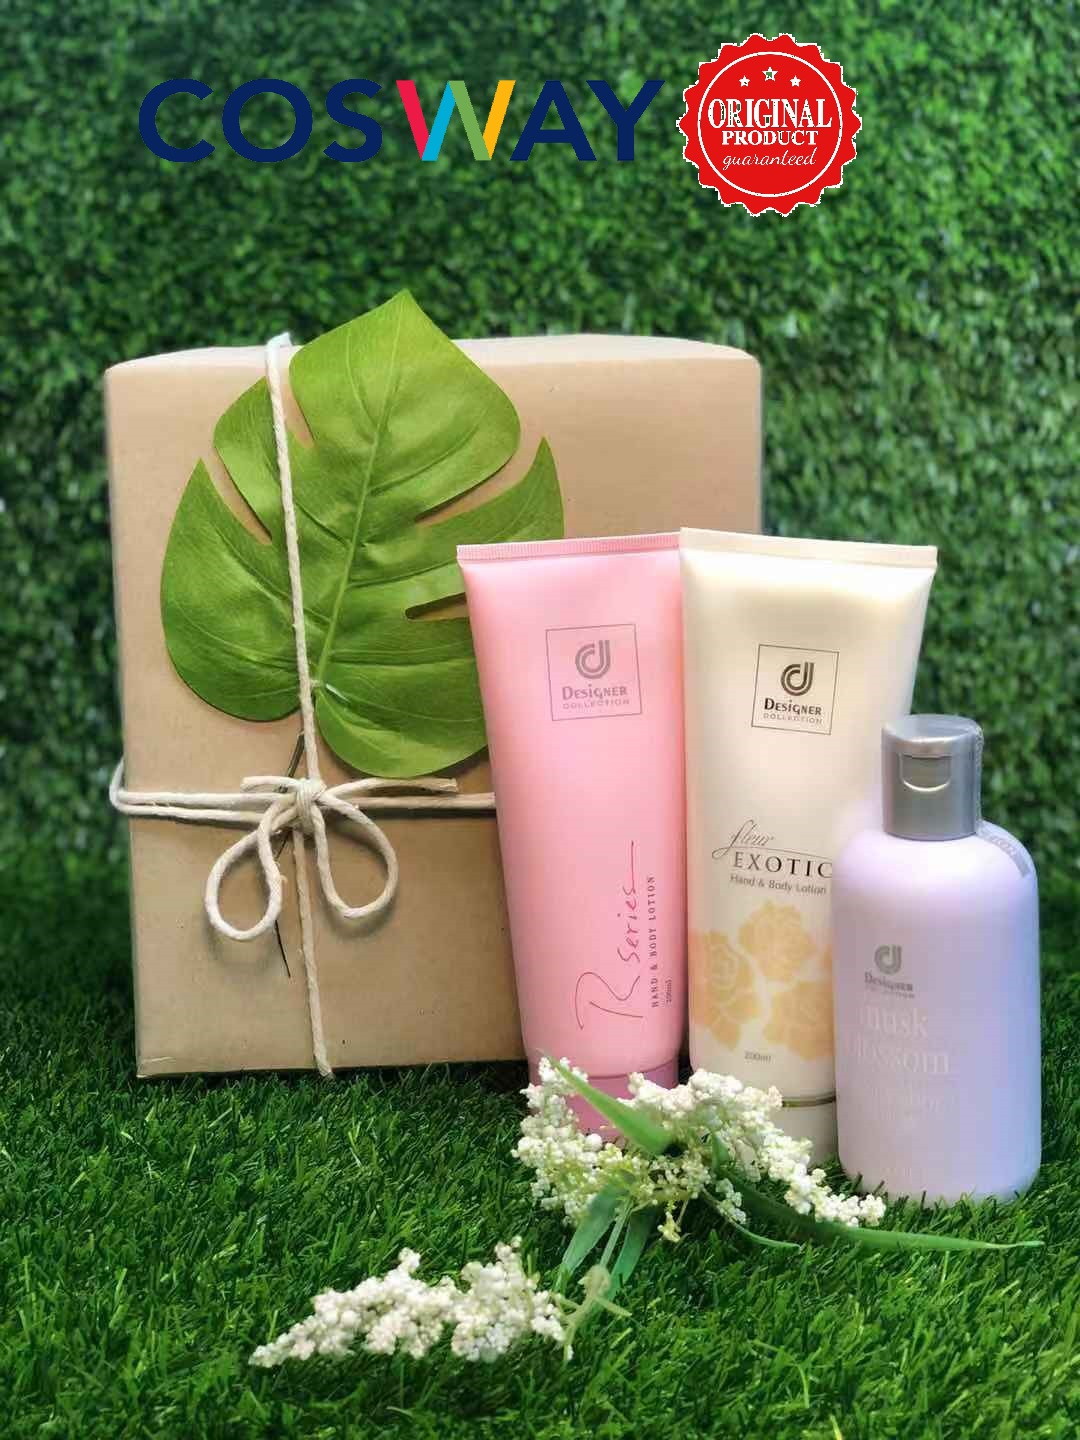 GS005- Cosway Designer Collection Lotion Series - Gift Set 3in1 (Original Cosway)